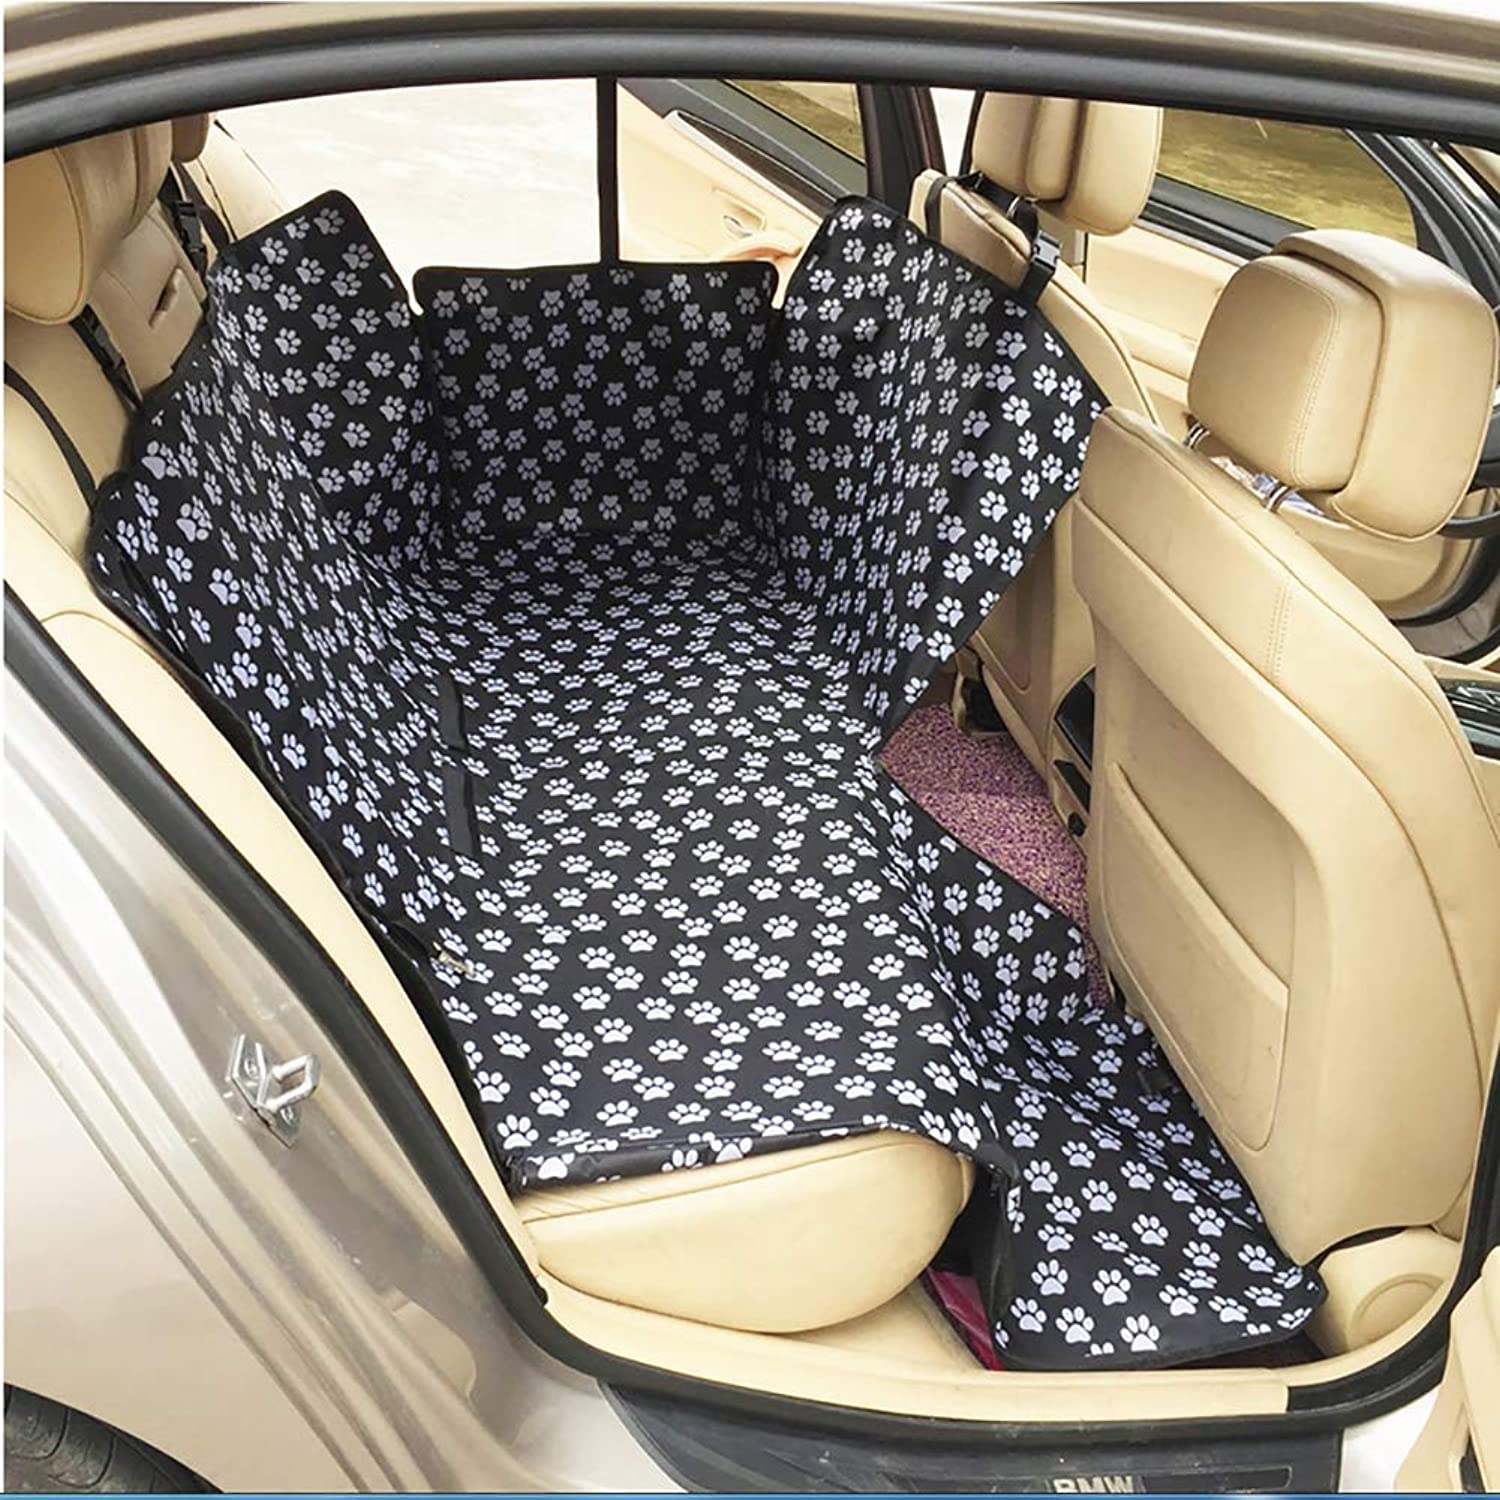 Dog Seat Cover  AntiDirty Waterproof Wear Pad Car Rear Seat Pet Hammock for Cars Trucks SUVs